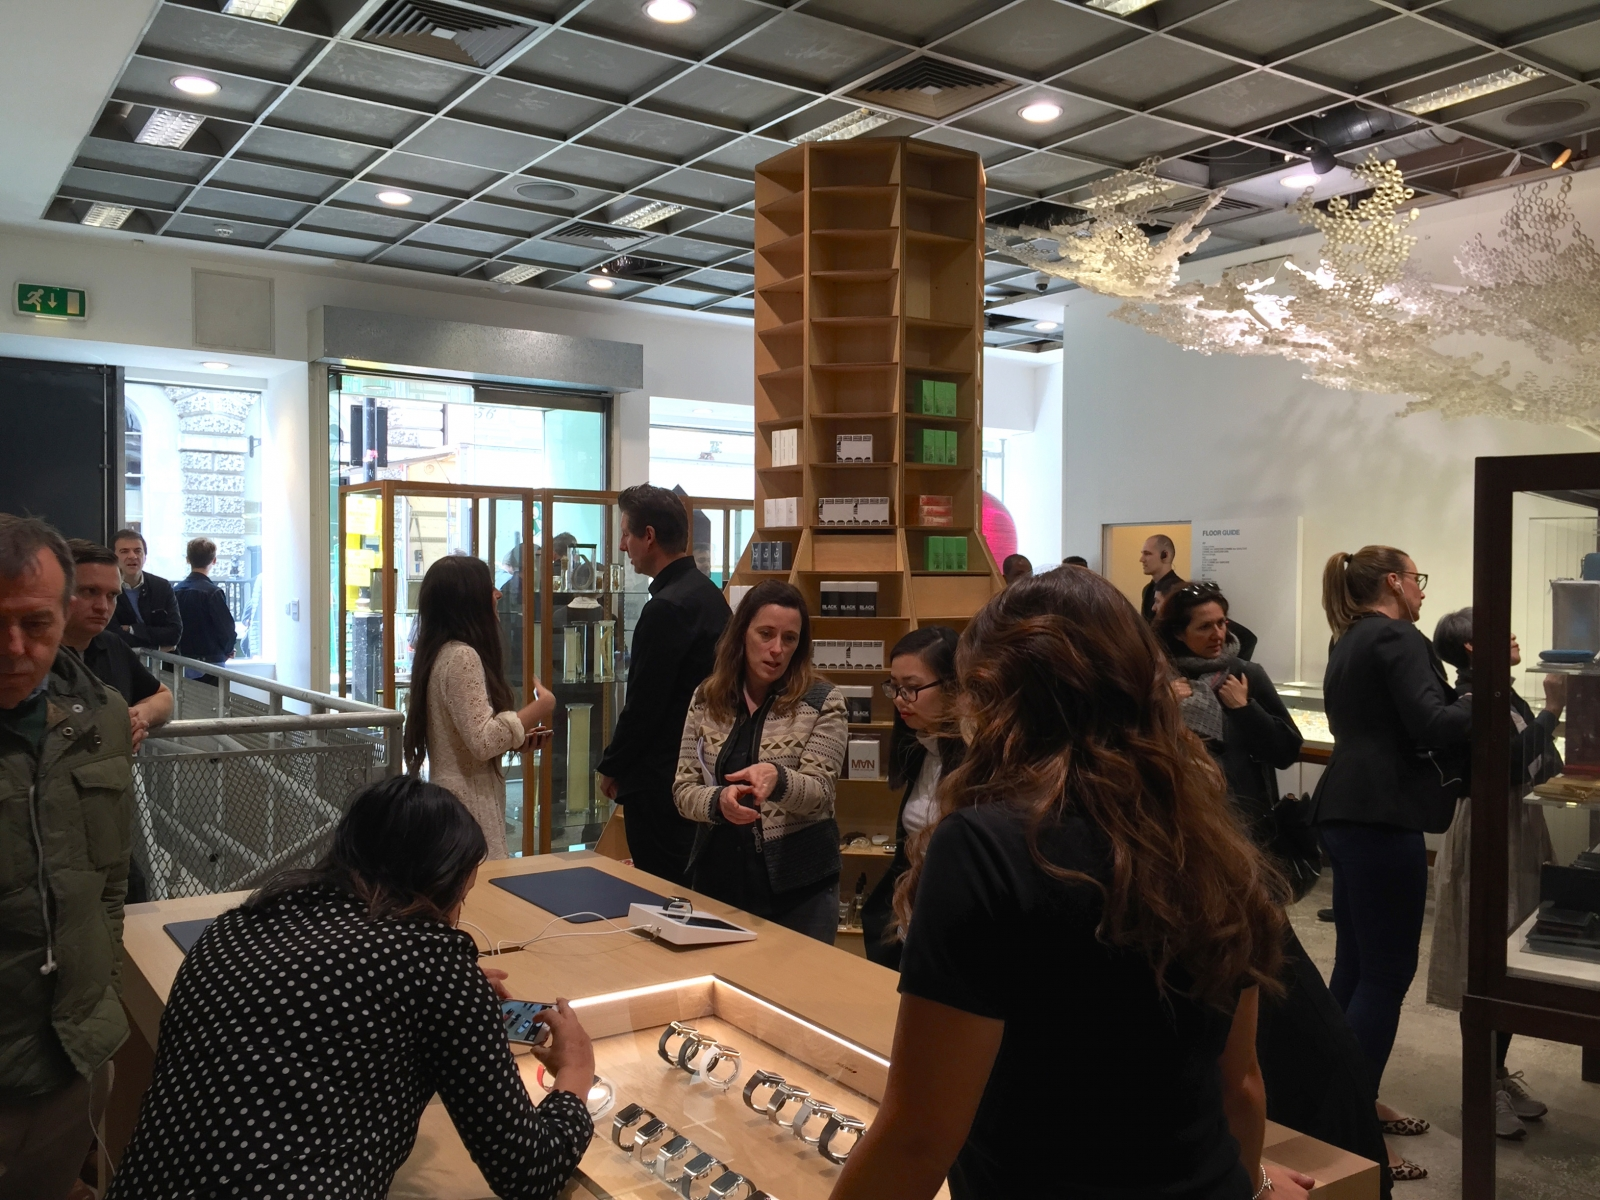 Apple Watch in Dover Street Market